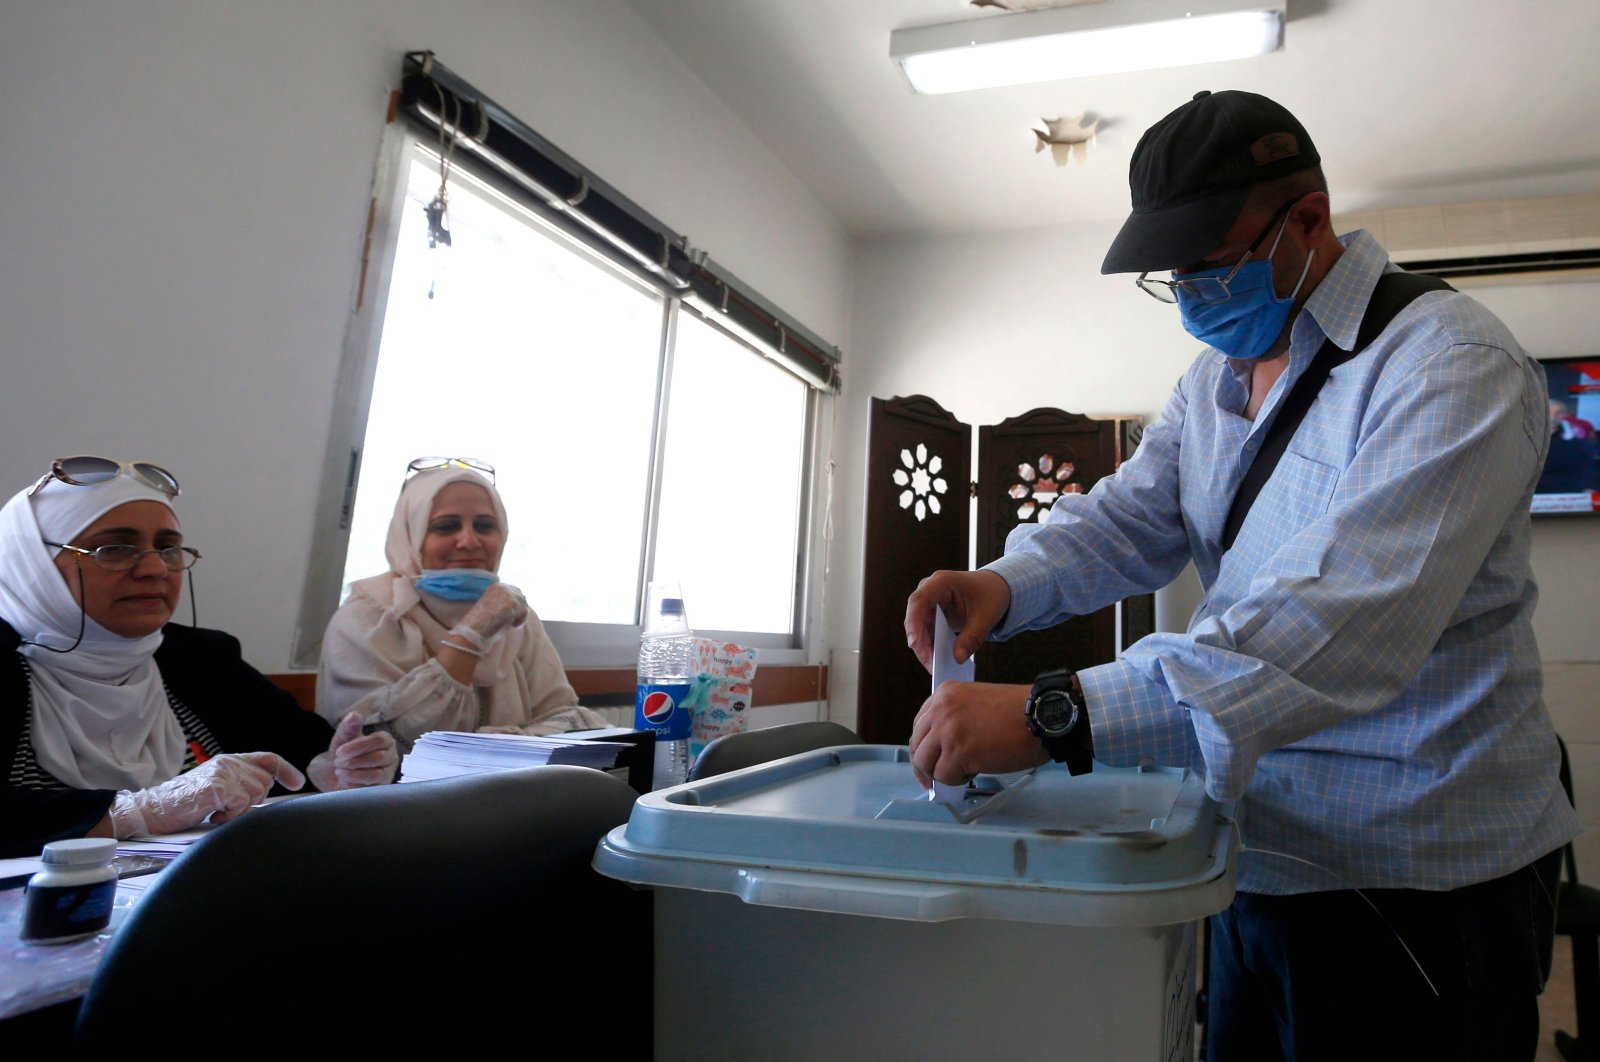 A man casts his ballot at a voting station during the parliamentary elections in Syria, Damascus, July 19, 2020. (AFP Photo)